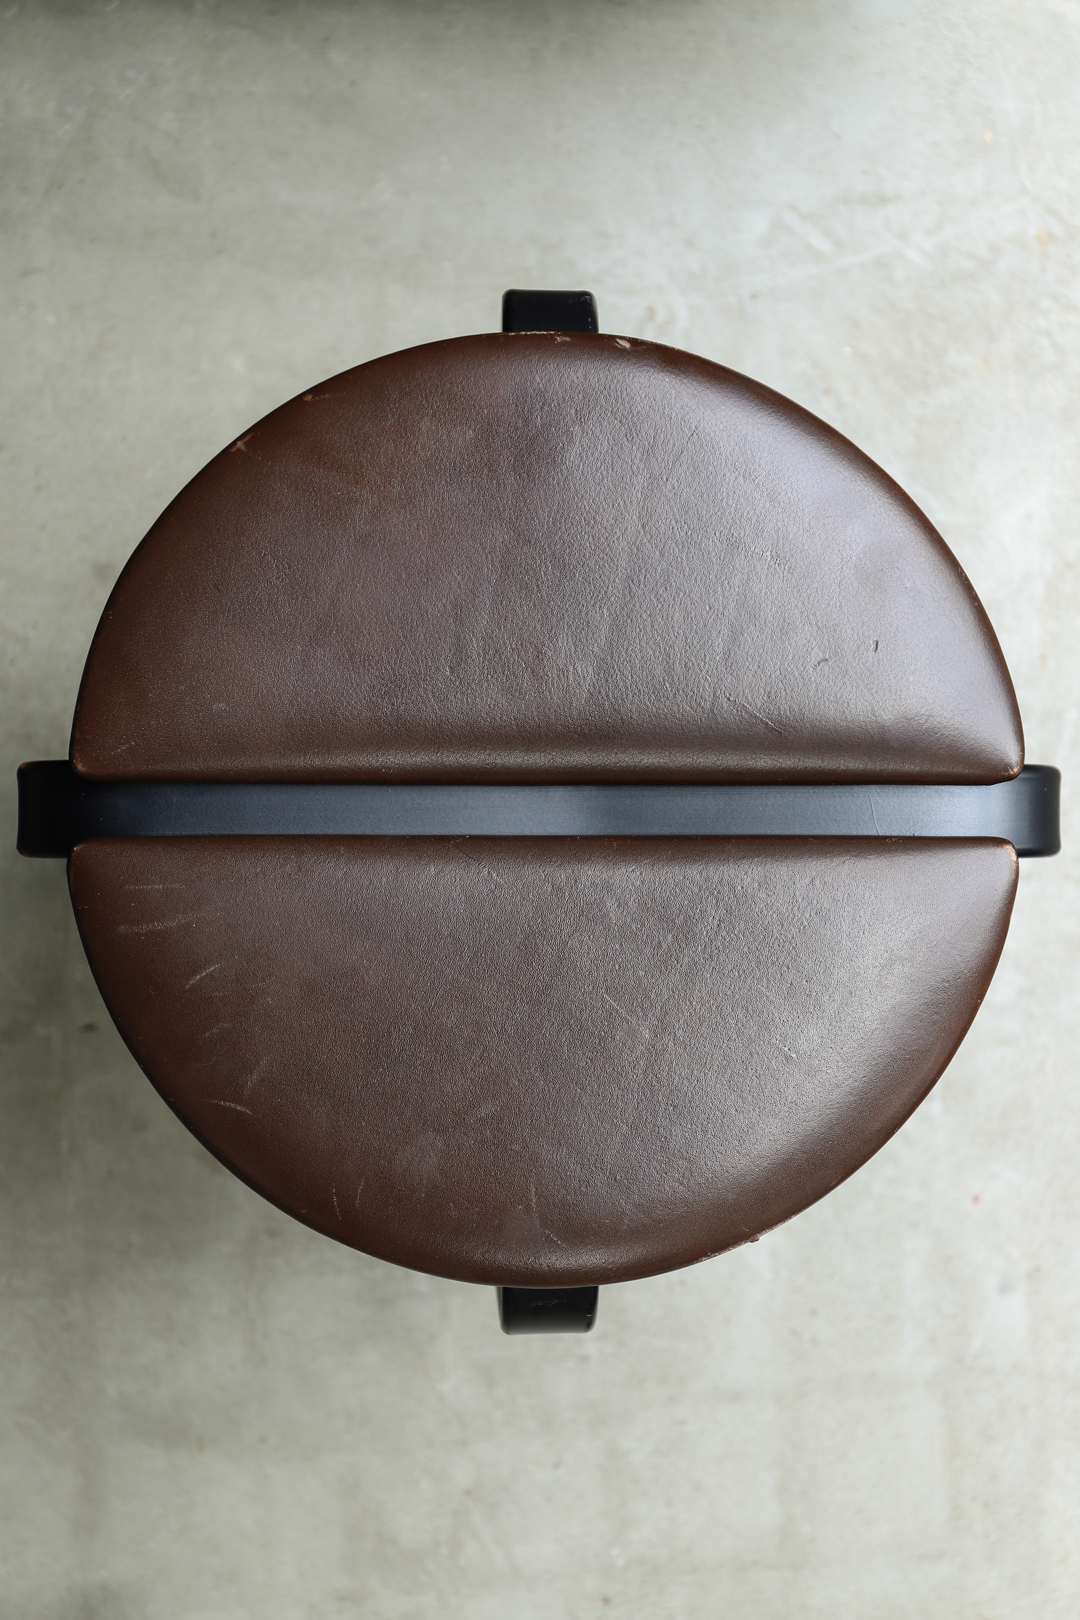 Danish Modern Design Stool by BKS/ スツール デンマークモダン チェア北欧 ヴィンテージ 椅子